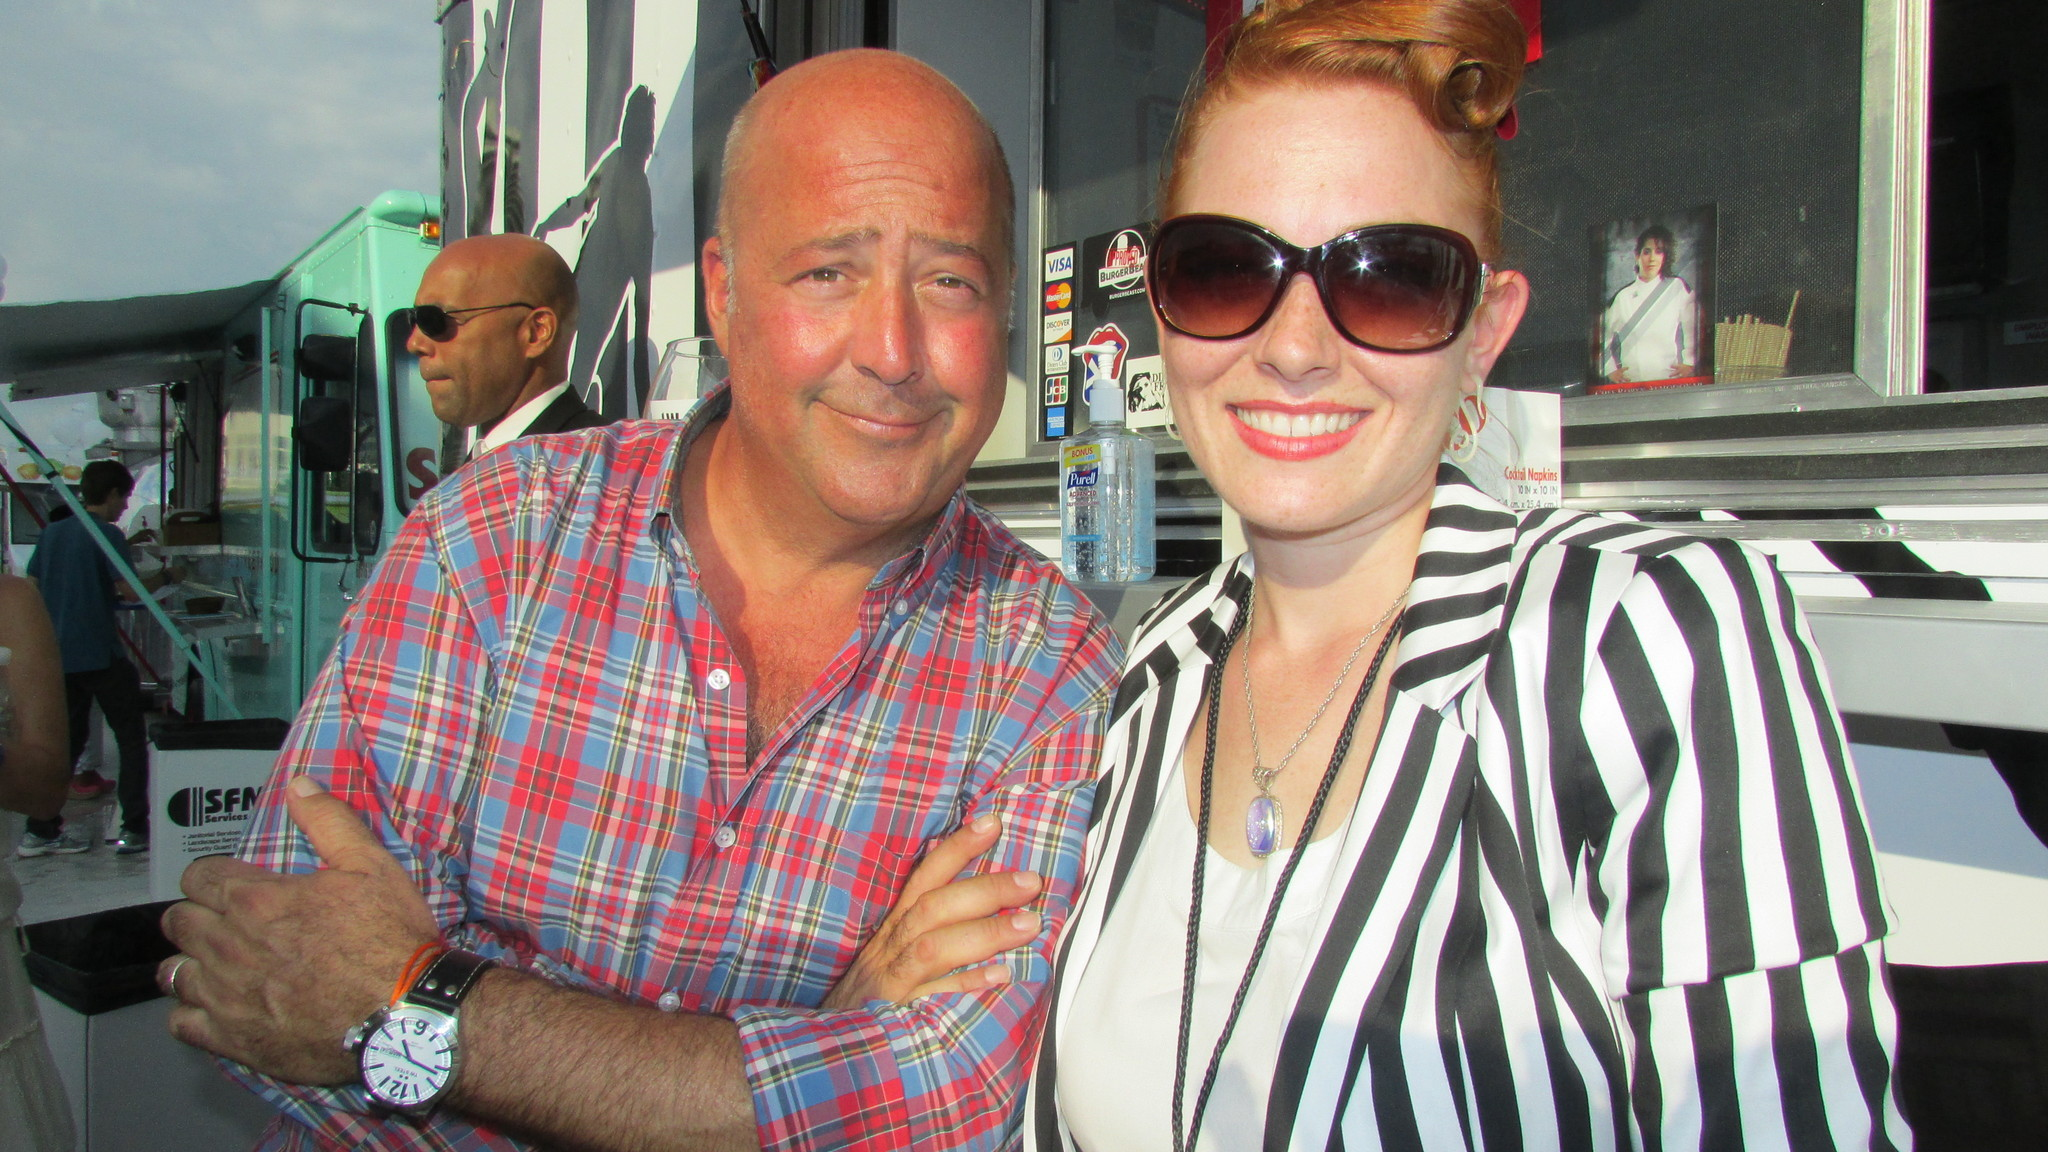 Celeb-spotting at SoBe Wine and Food Festival - Andrew Zimmern at Midtown food trucks